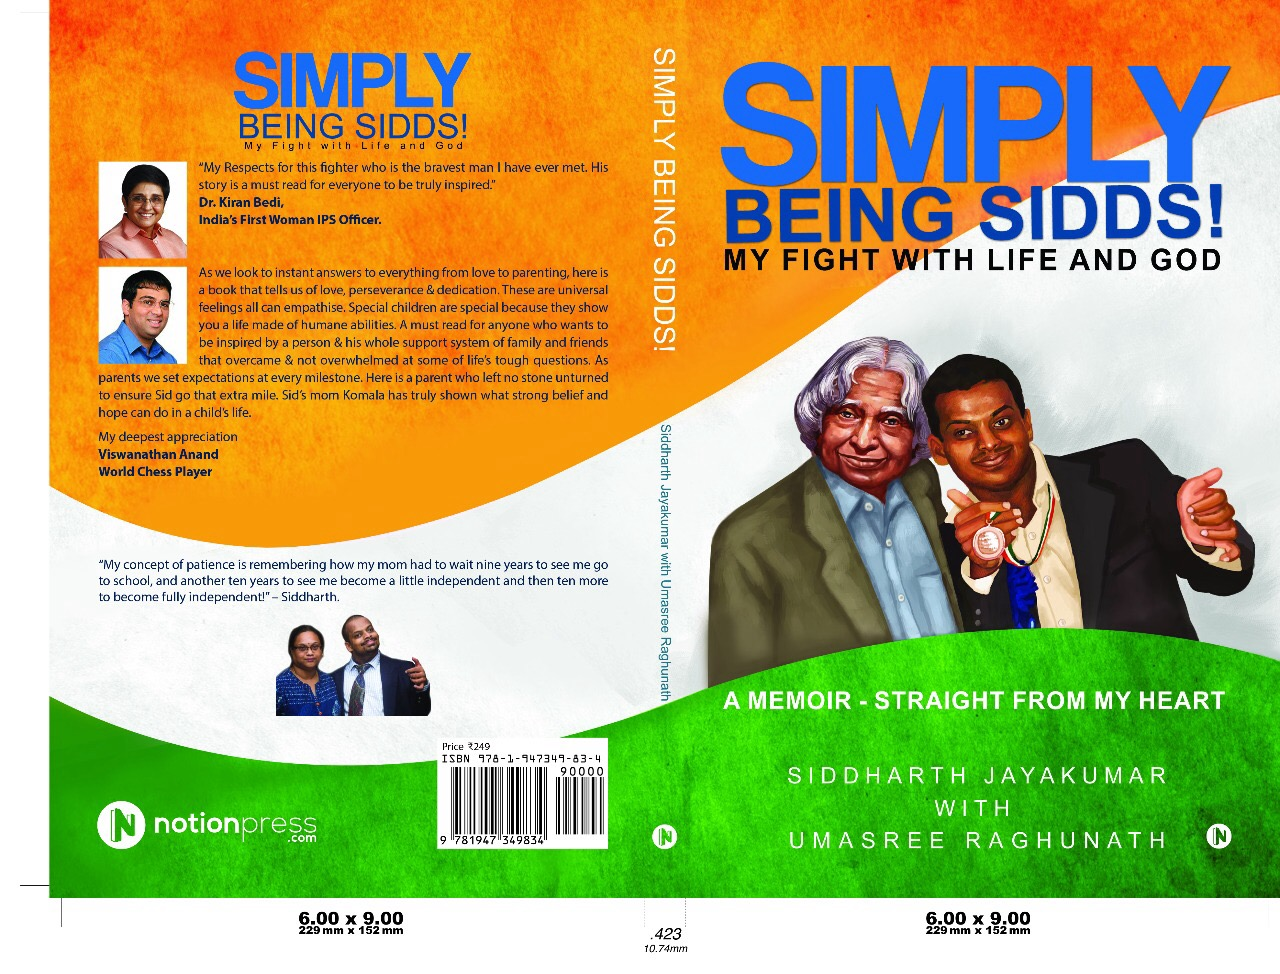 Simply Being Sidds!  - Published August 2017